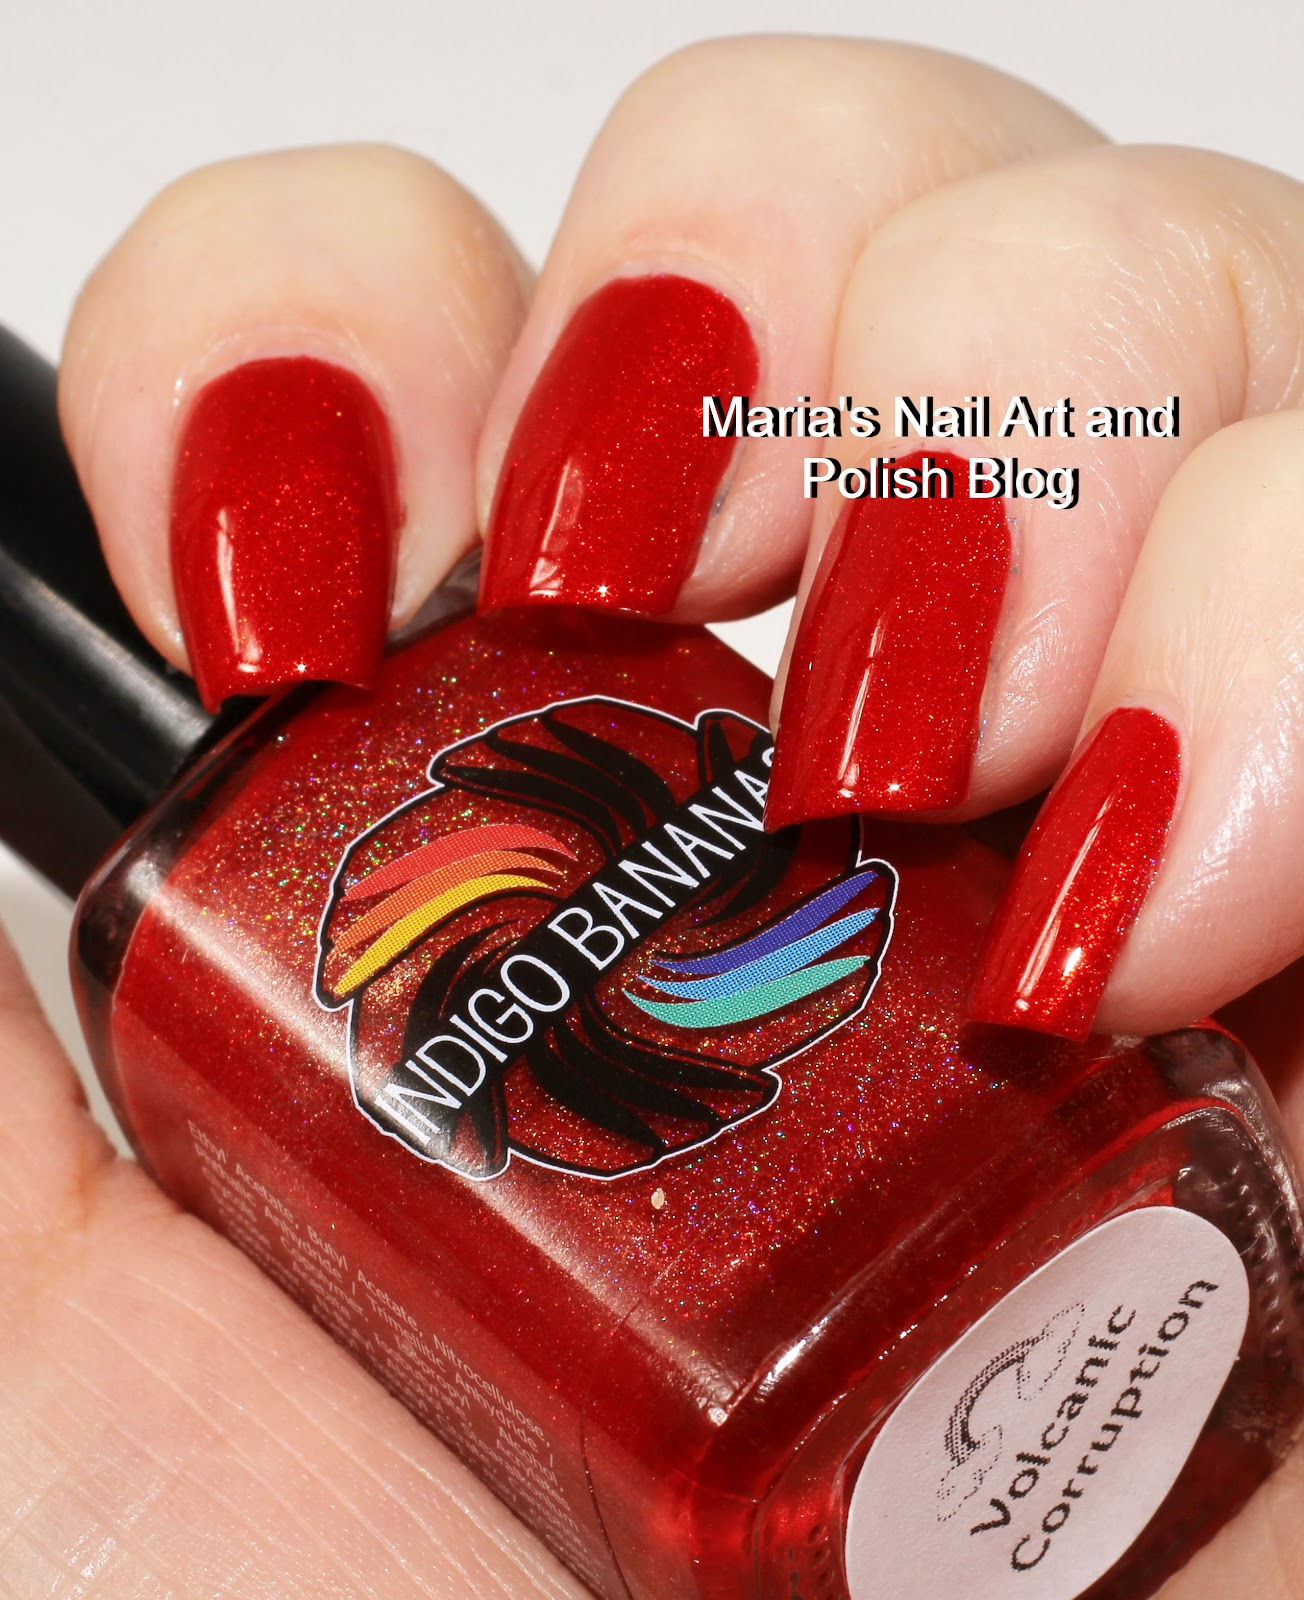 Marias Nail Art And Polish Blog Flushed With Stripes And: Marias Nail Art And Polish Blog: Indigo Bananas Volcanic